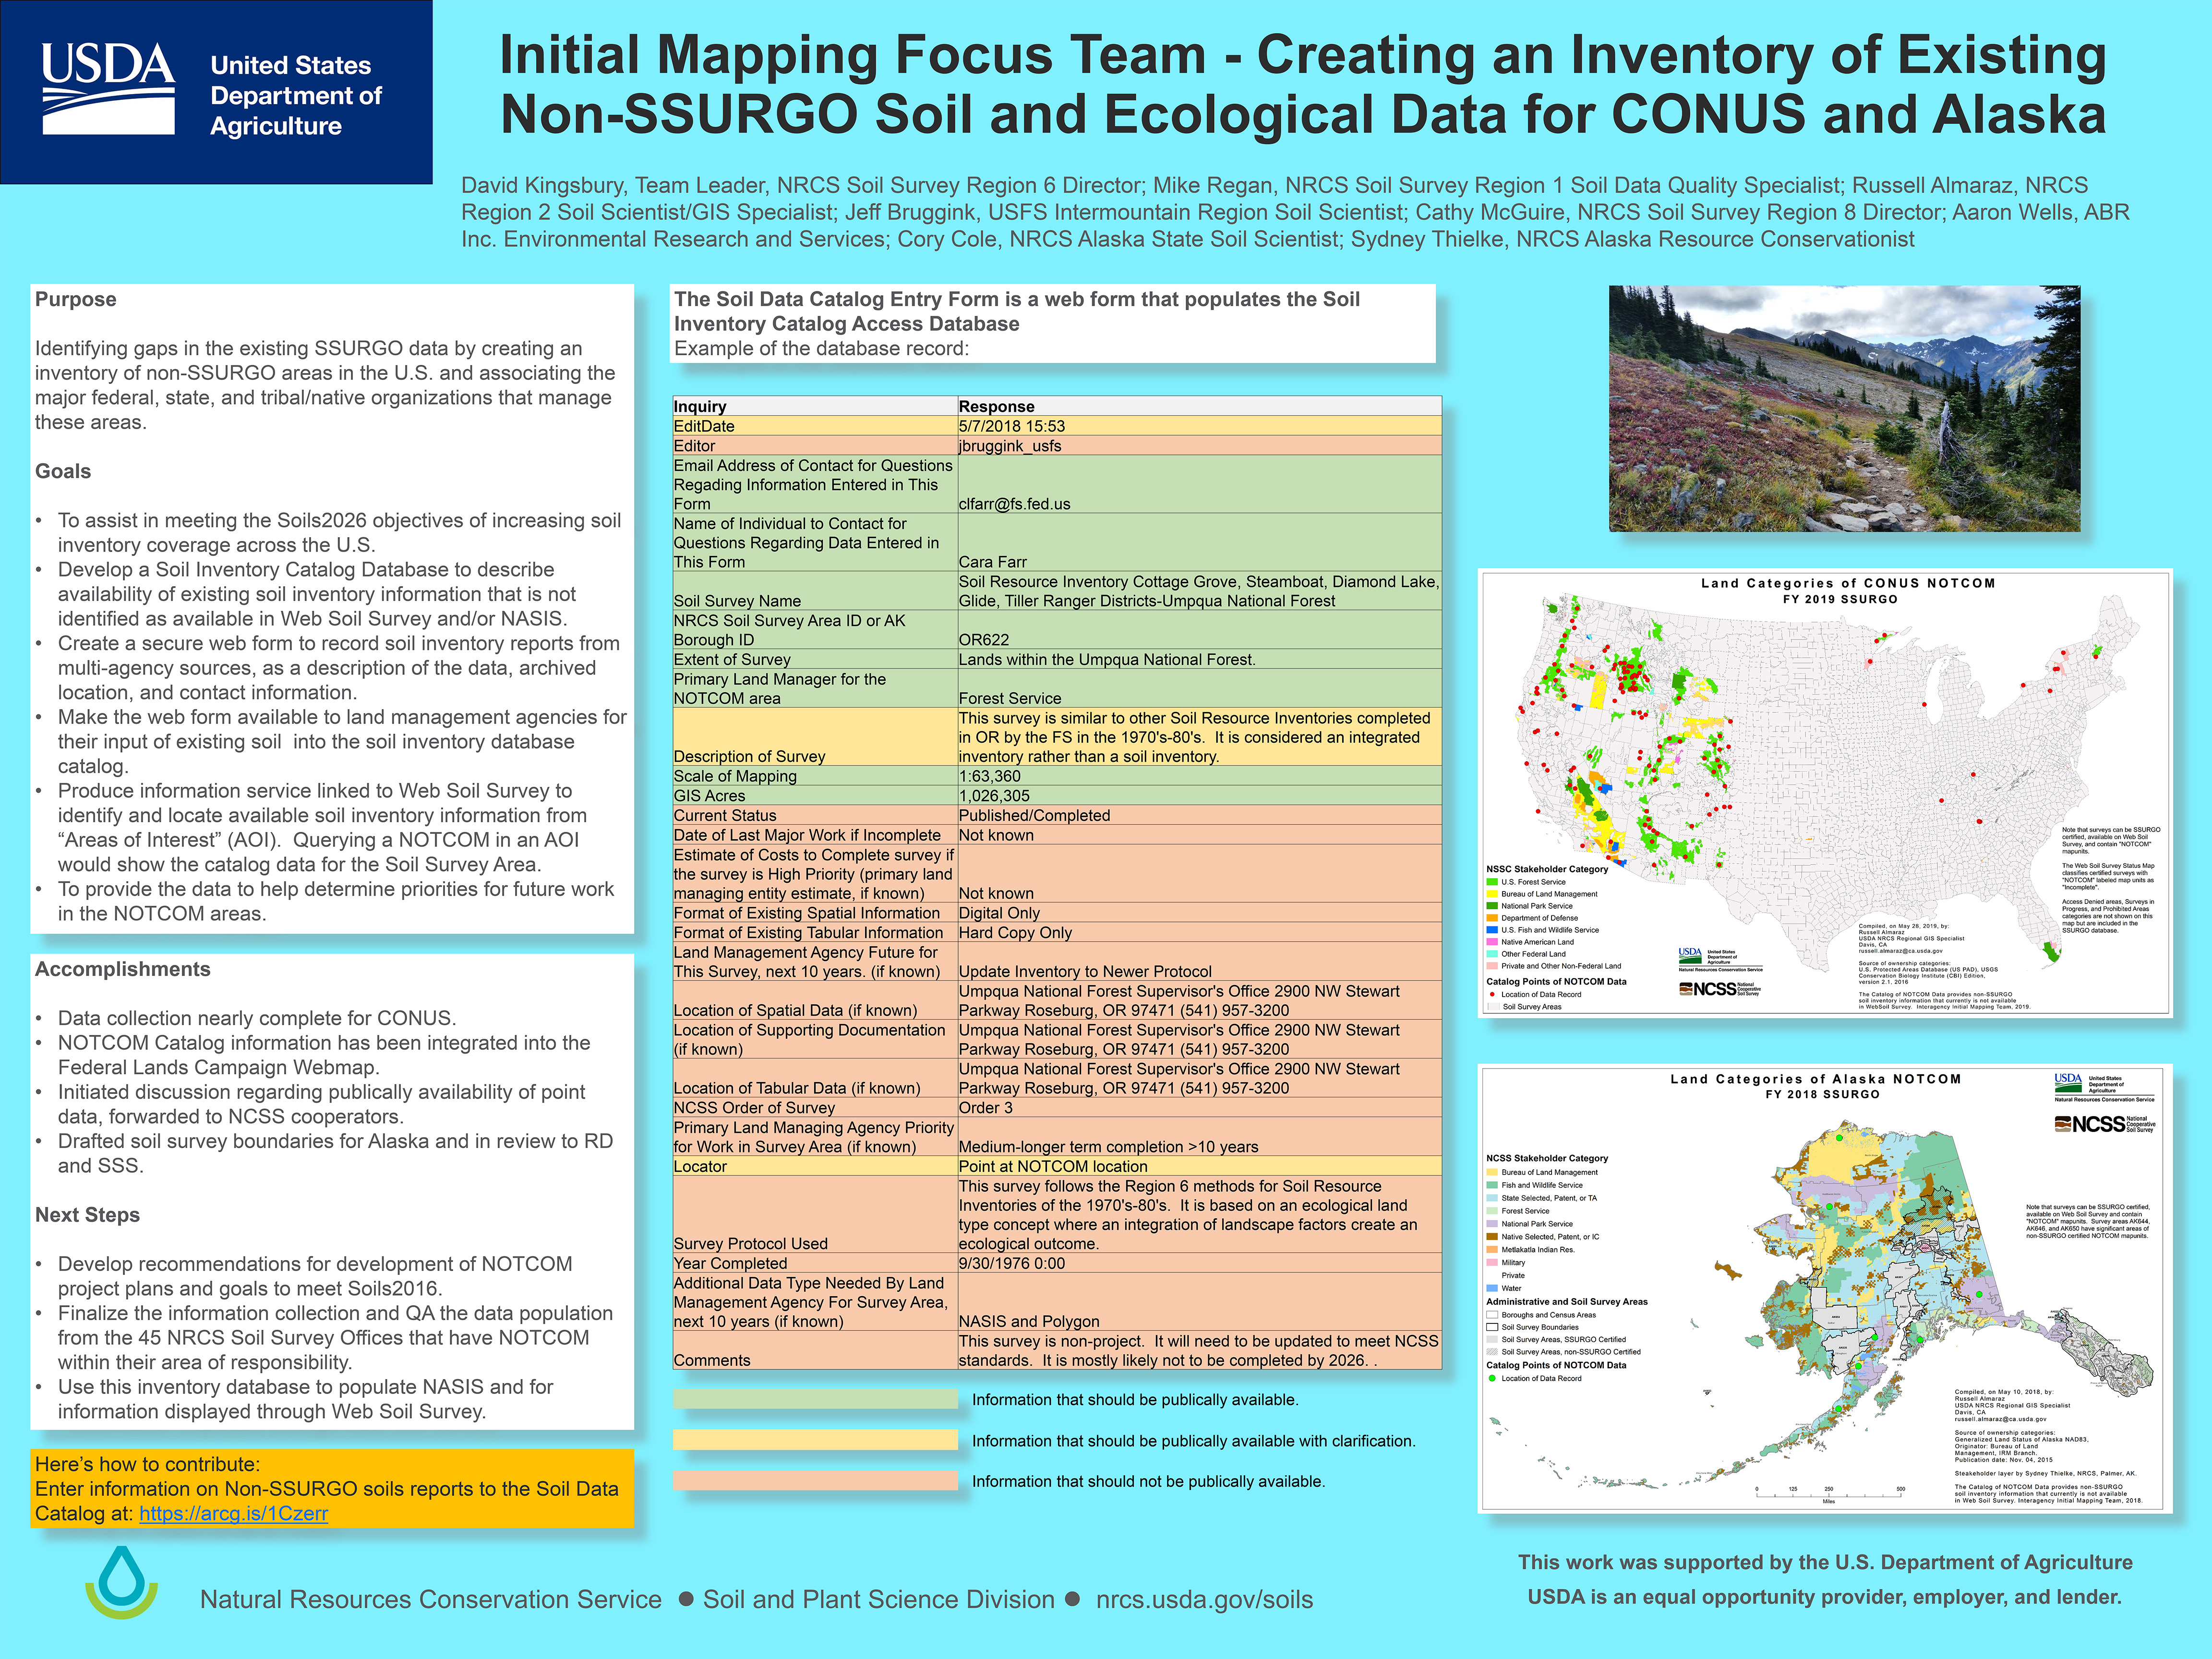 Initial Mapping Team poster presented at the 2019 National NCSS Conference.